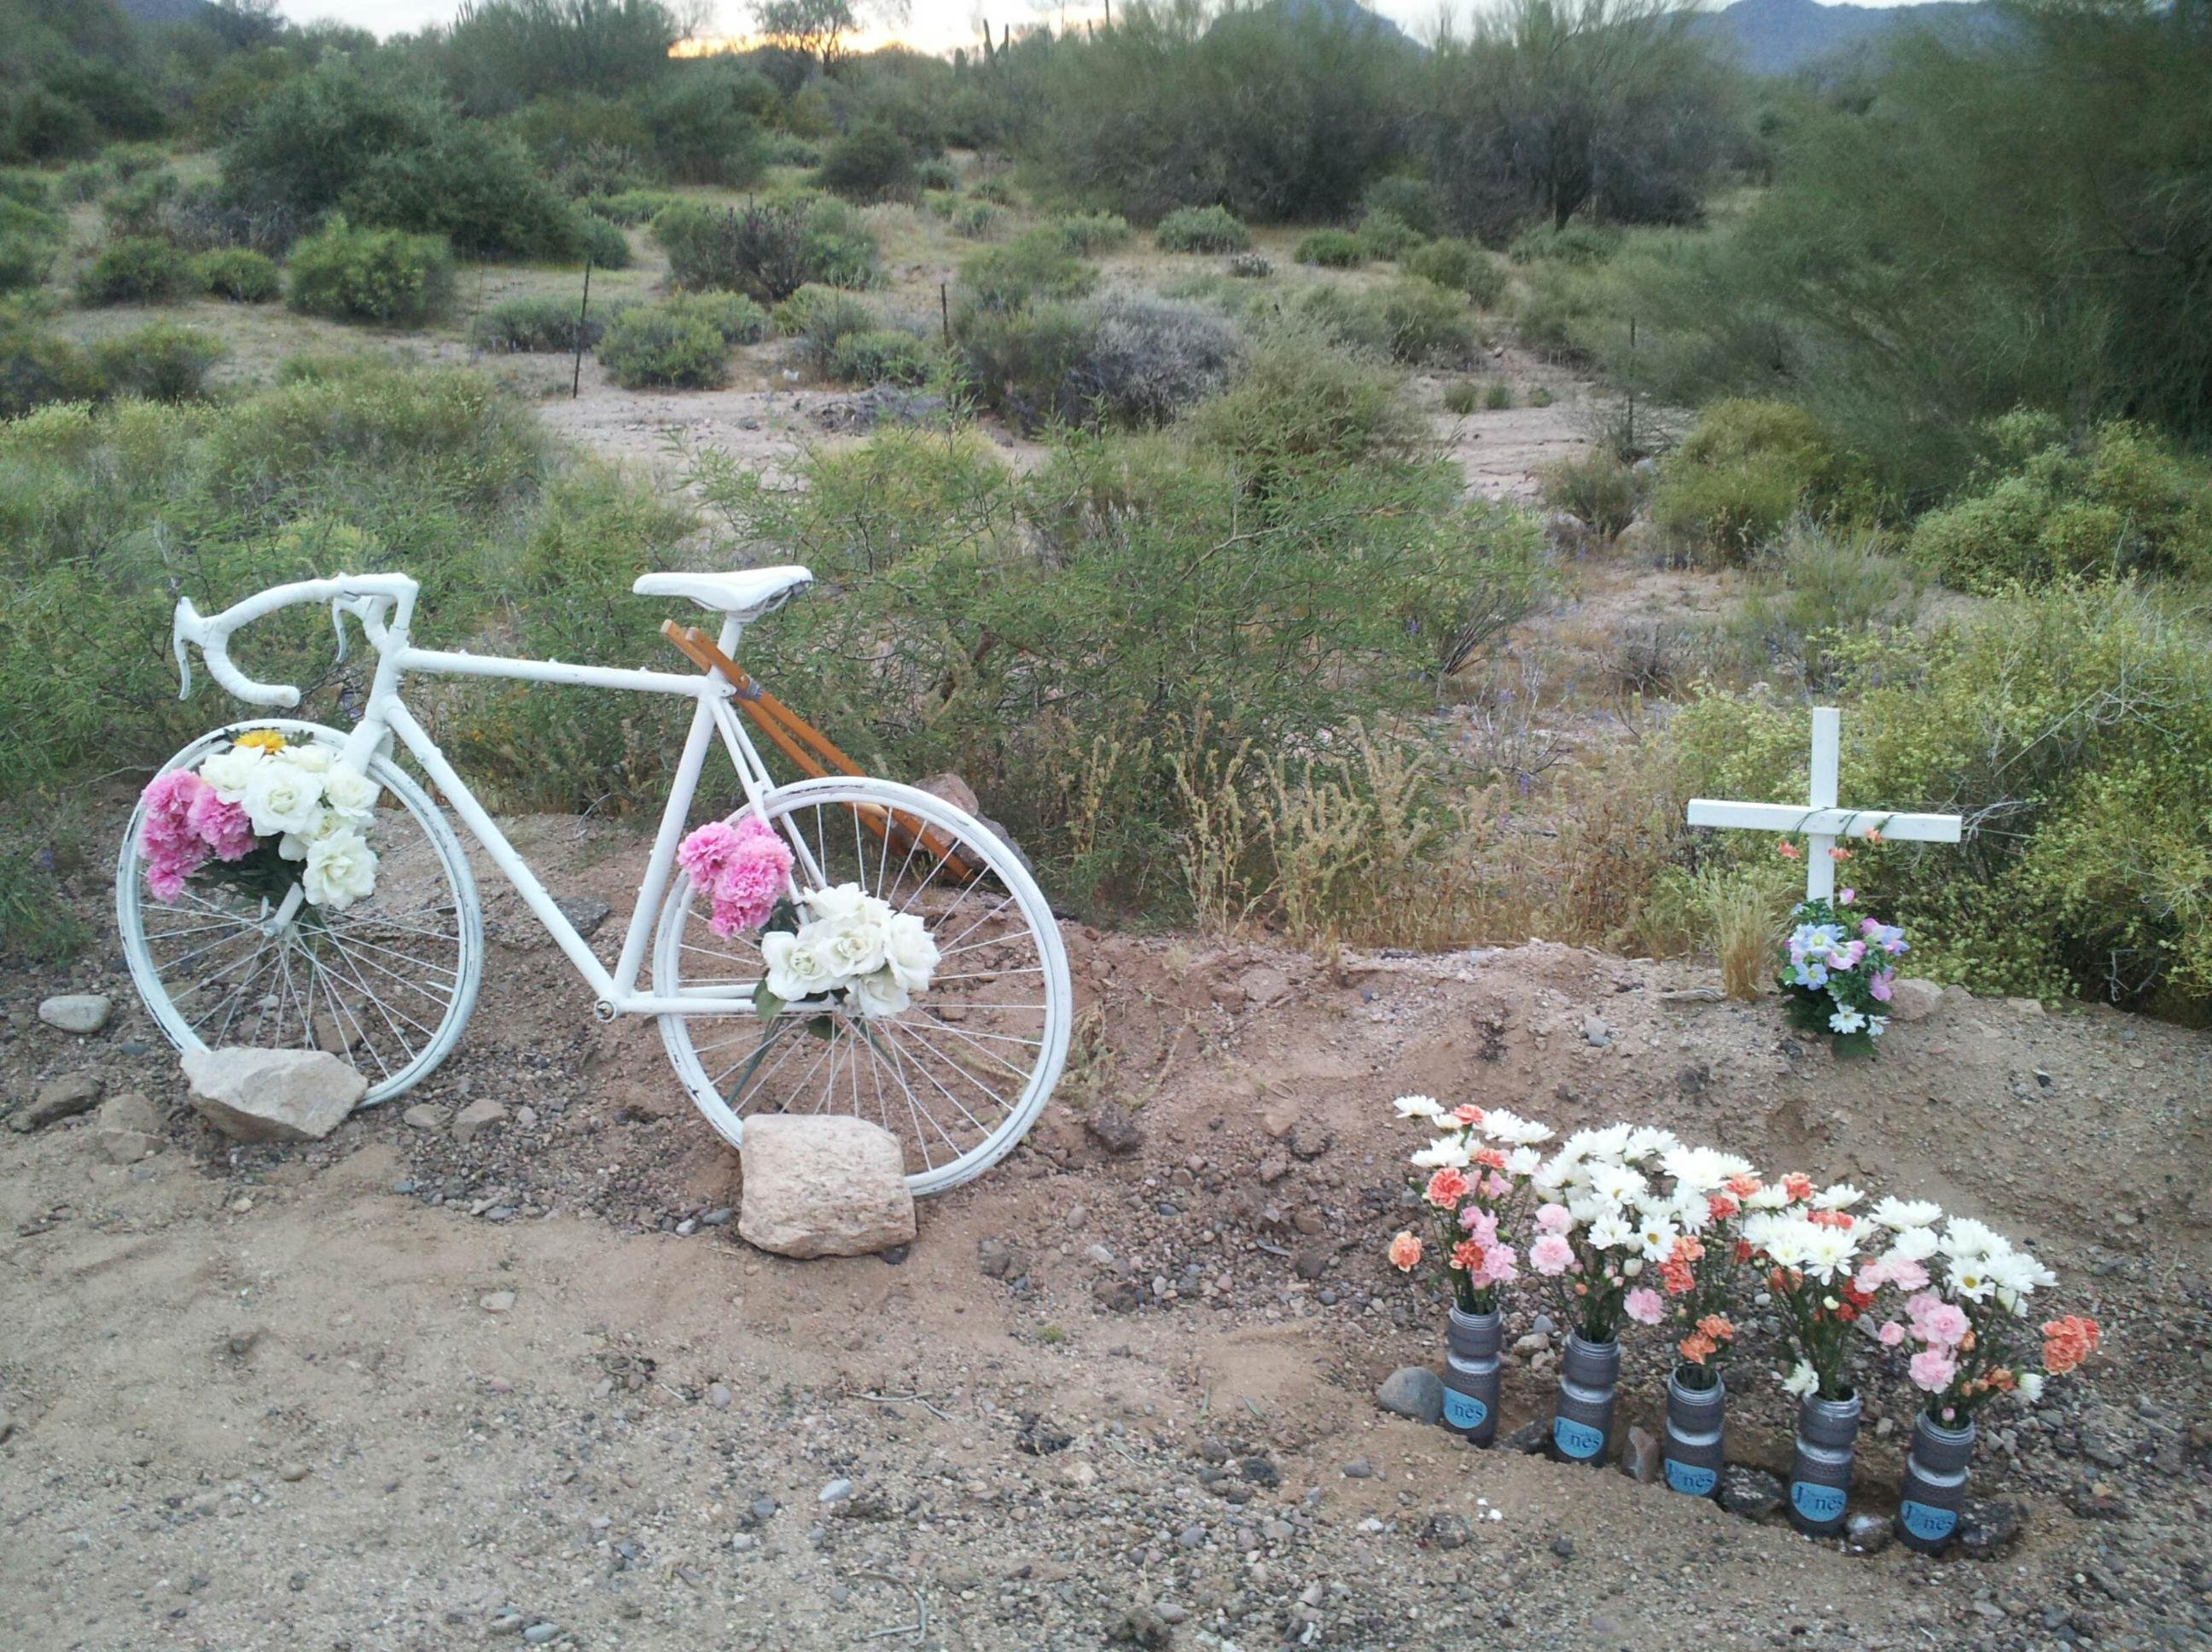 A memorial was set up for Clare Kirby at the crash location (Source: CBS 5 News)